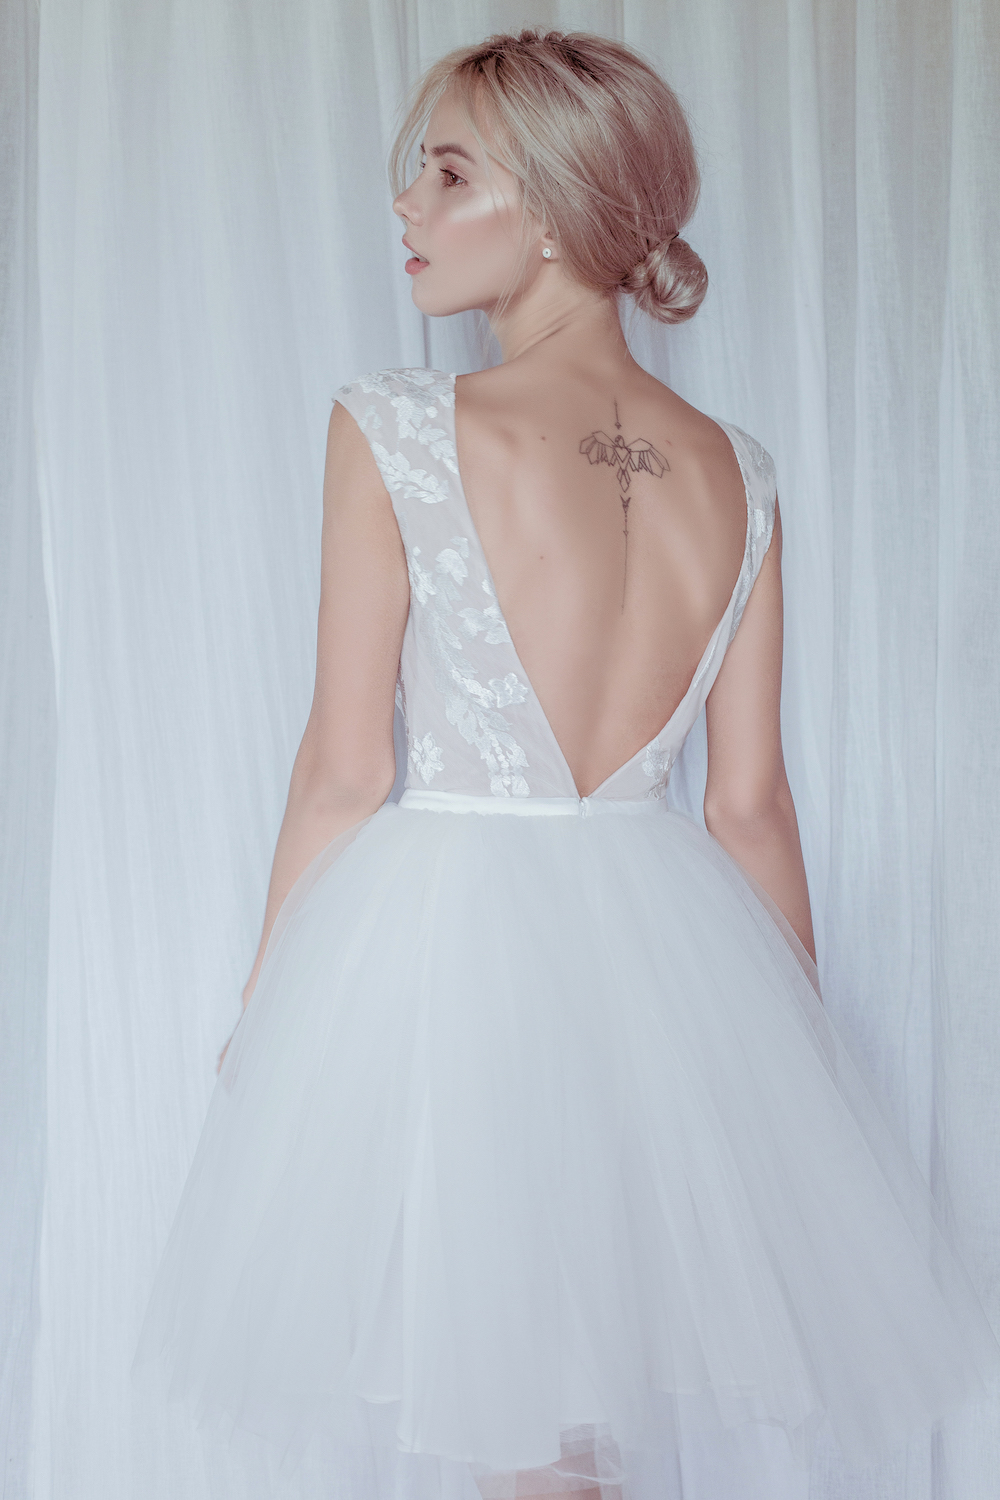 Rio Jumpsuit & Poppy Skirt by Oui The Label 2018 Stolen Moments Bridal Collection featured on LOVE FIND CO.